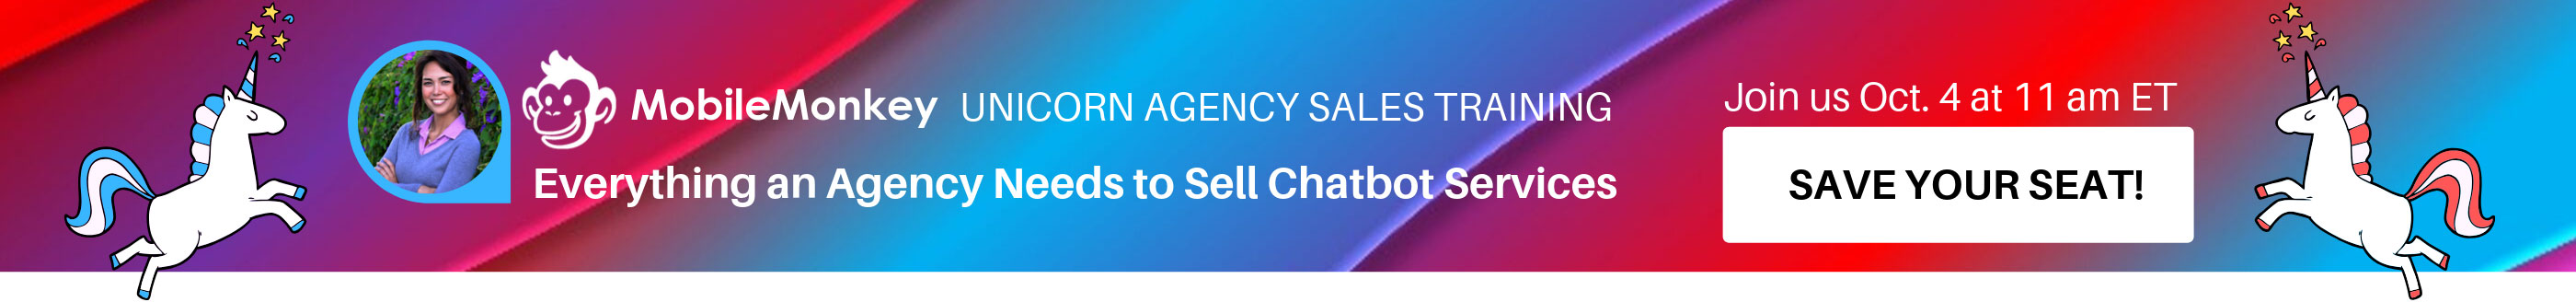 WSI Unicorn Agency Chatbot Sales Webinar Banner